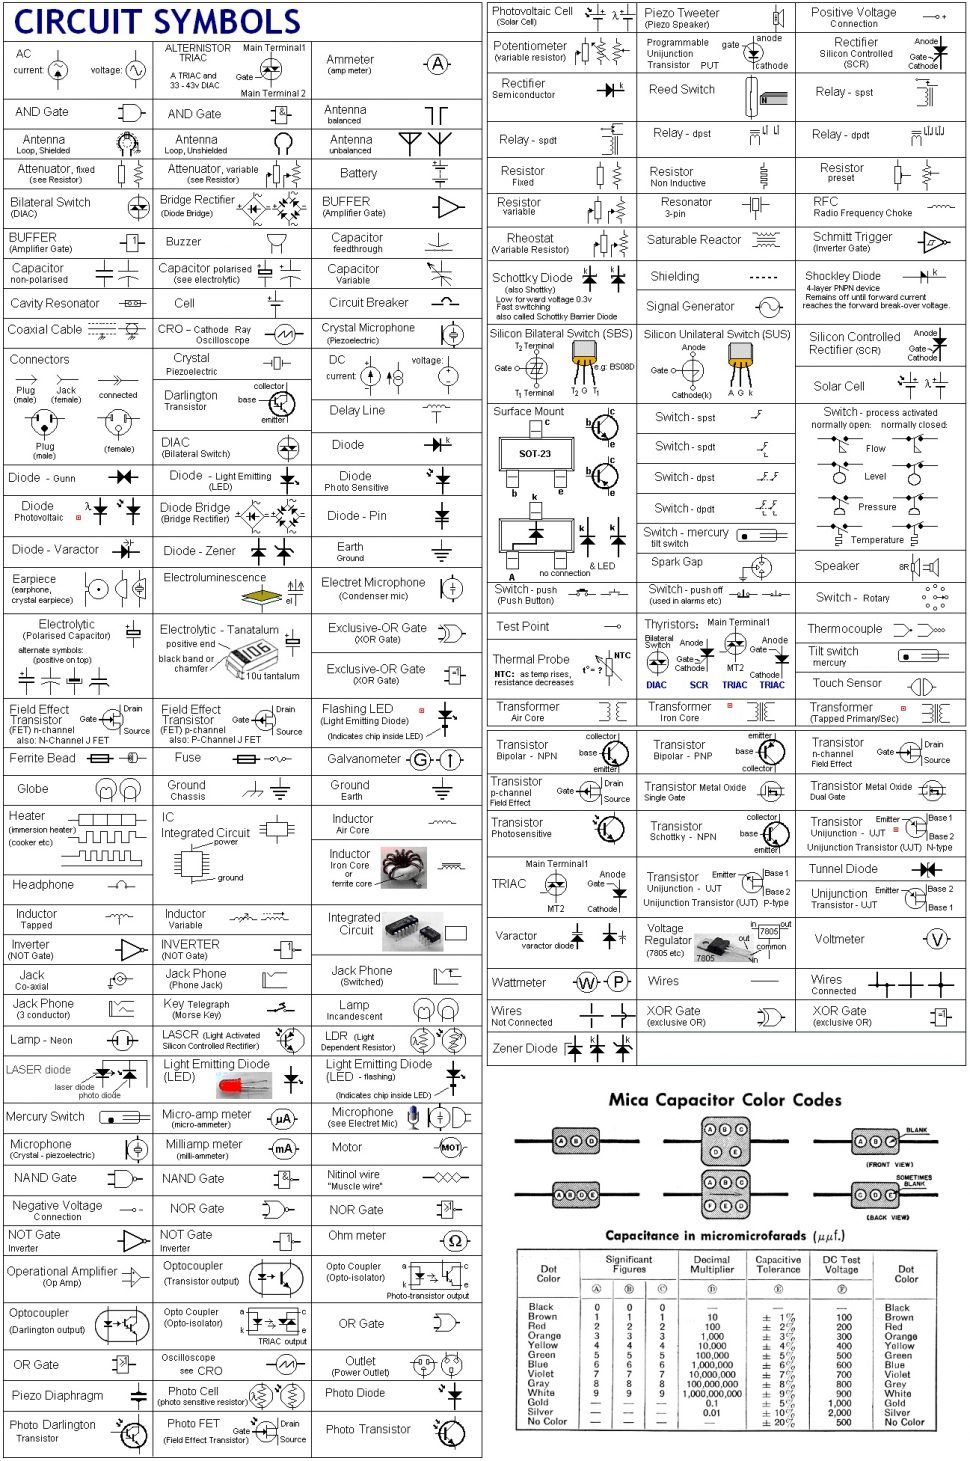 Component Wiring Schematic Symbols And Meanings Electrical Download Wire Autocad Australian Standards Electronic Schematics Electric Circuit Electronics Basics